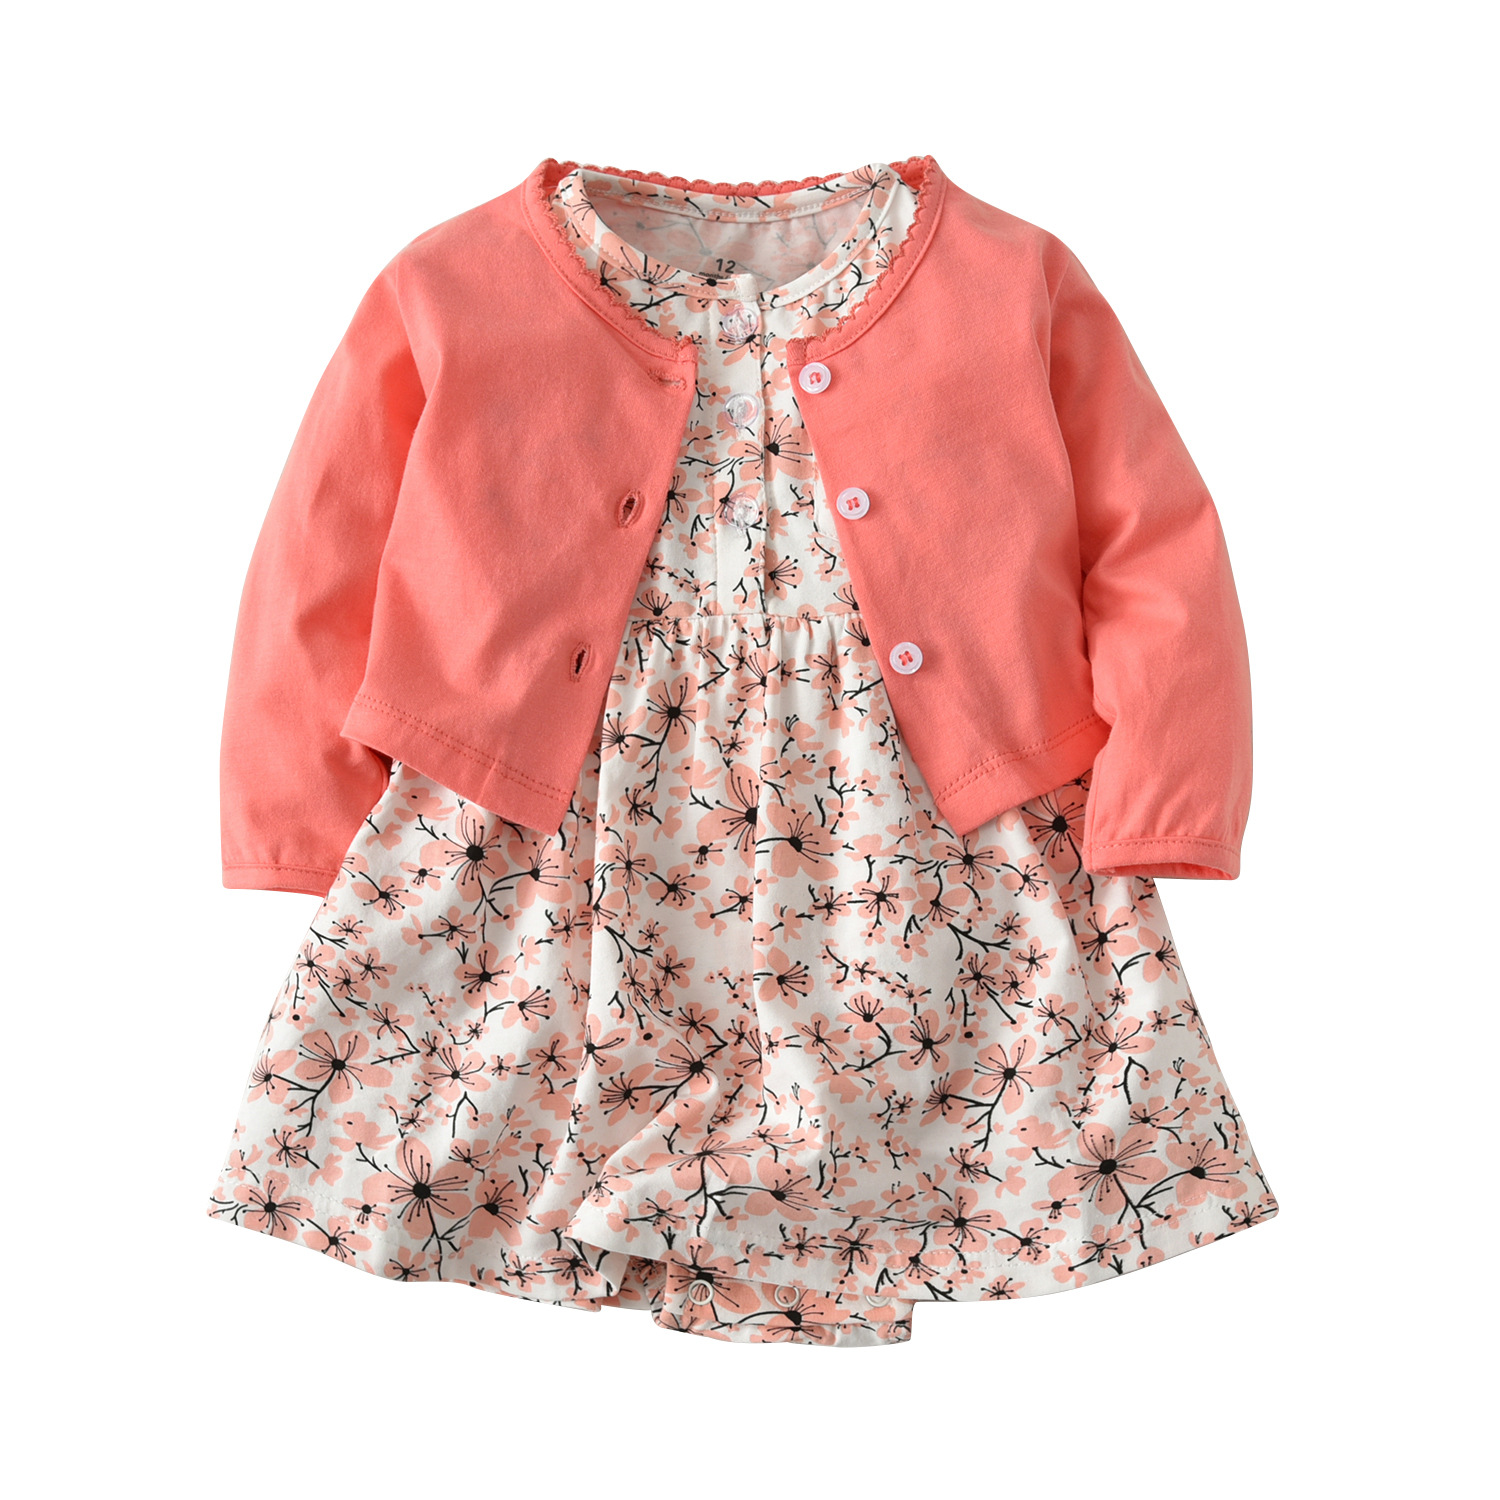 2pcs/set Baby Girl Clothes Newborn Toddler Infant Autumn Spring Cotton Baby Rompers+ Baby Cardigan Jacket Coat Baby Clothing Set ...